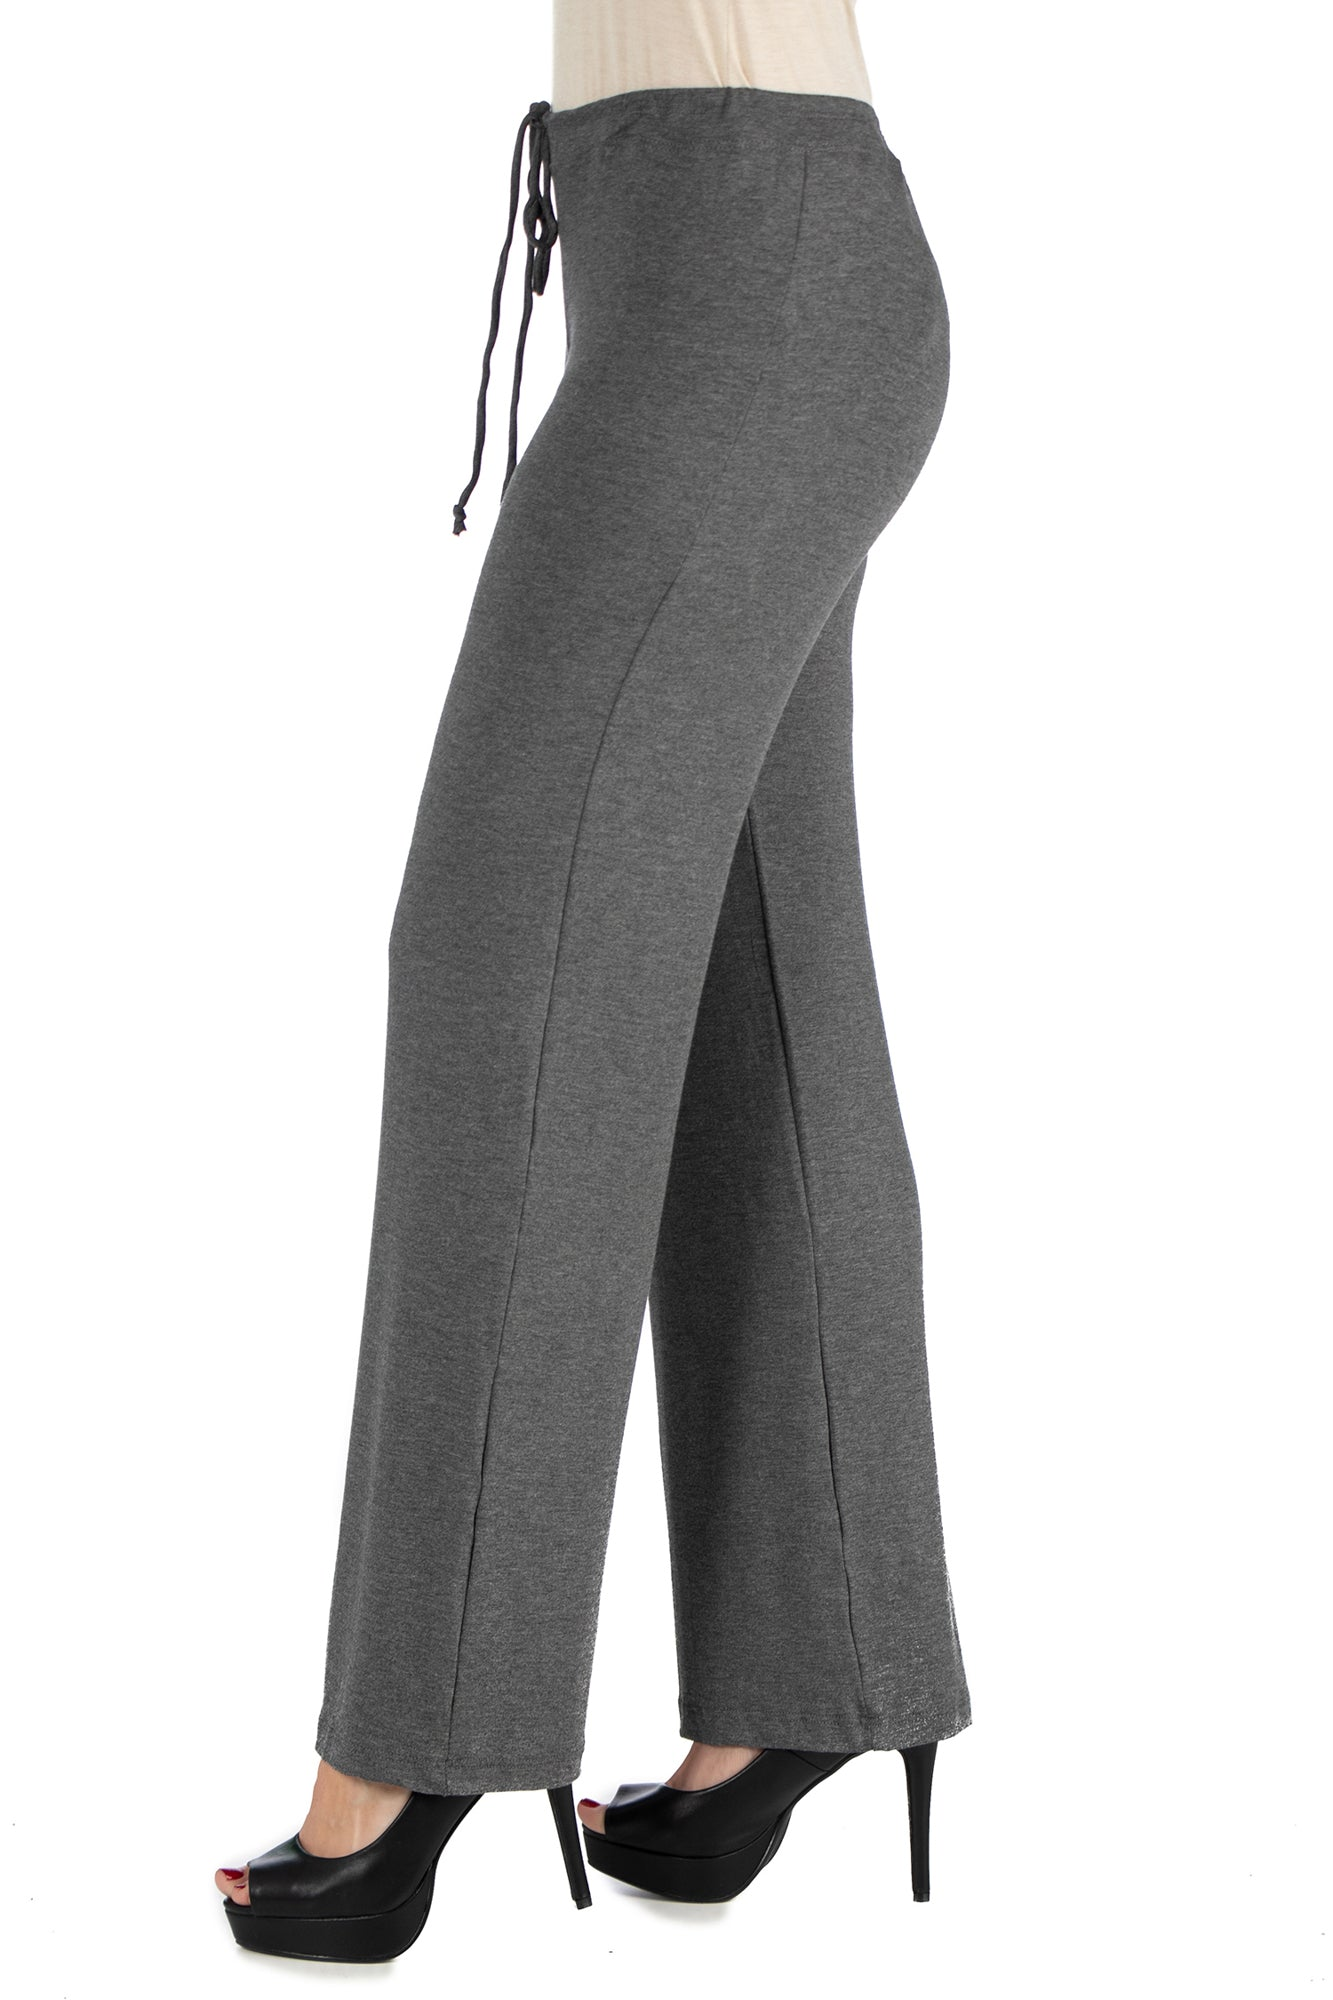 24seven Comfort Apparel Womens Comfortable Stretch Draw String Pants-PANTS-24Seven Comfort Apparel-SMOKE-S-24/7 Comfort Apparel